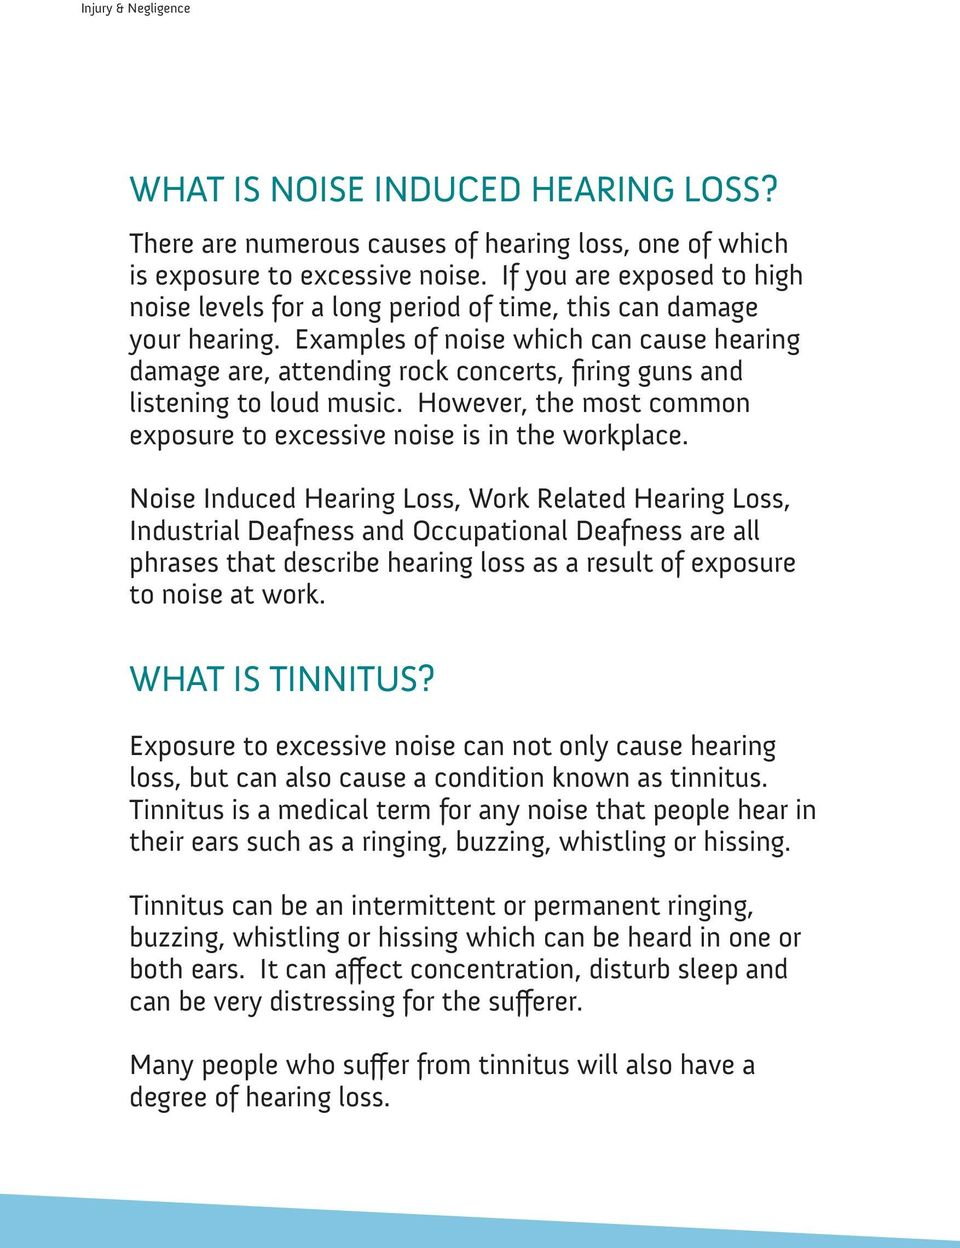 Examples of noise which can cause hearing damage are, attending rock concerts, firing guns and listening to loud music. However, the most common exposure to excessive noise is in the workplace.